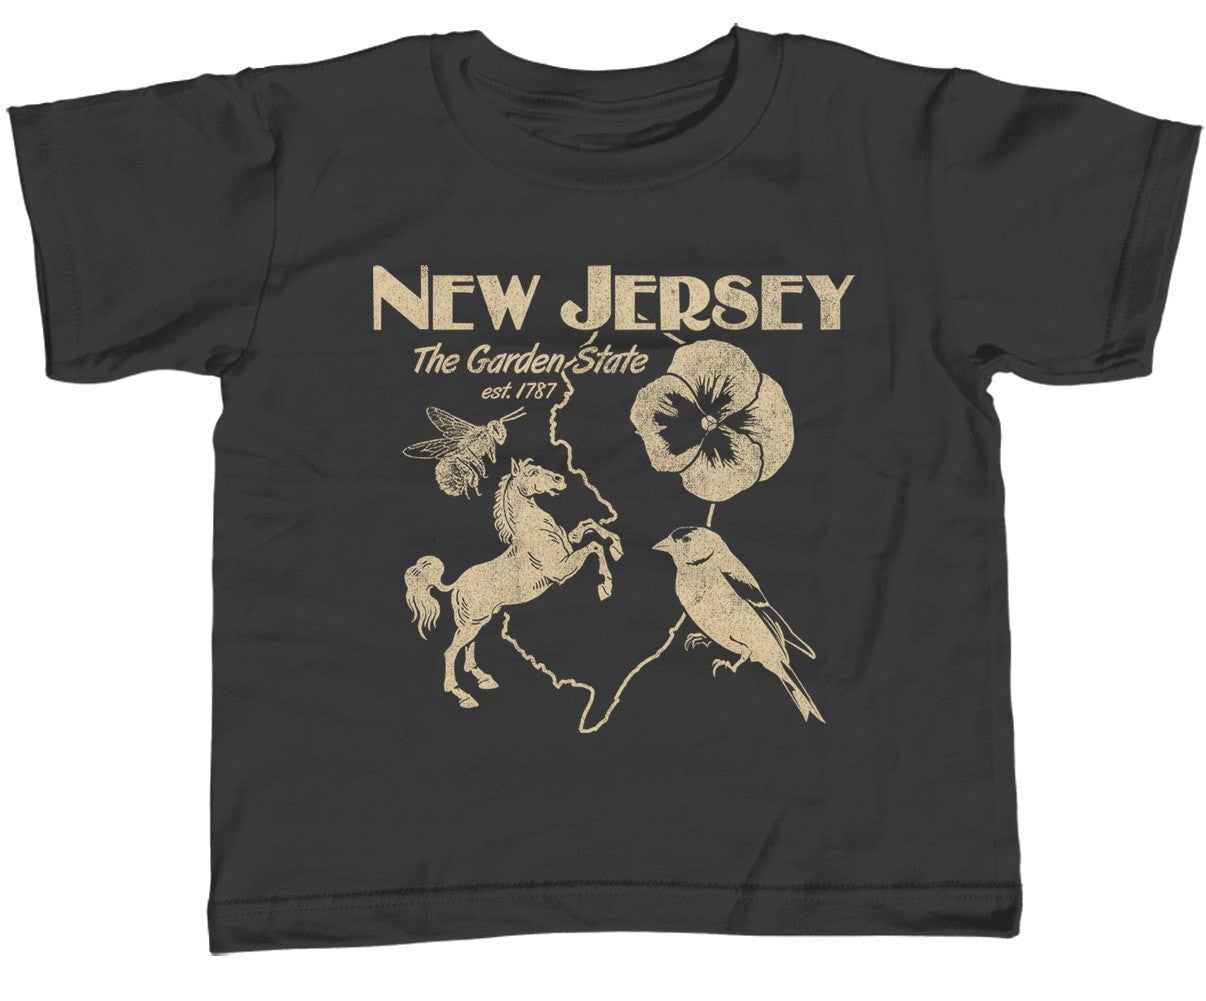 Boy's New Jersey T-Shirt Retro Garden State